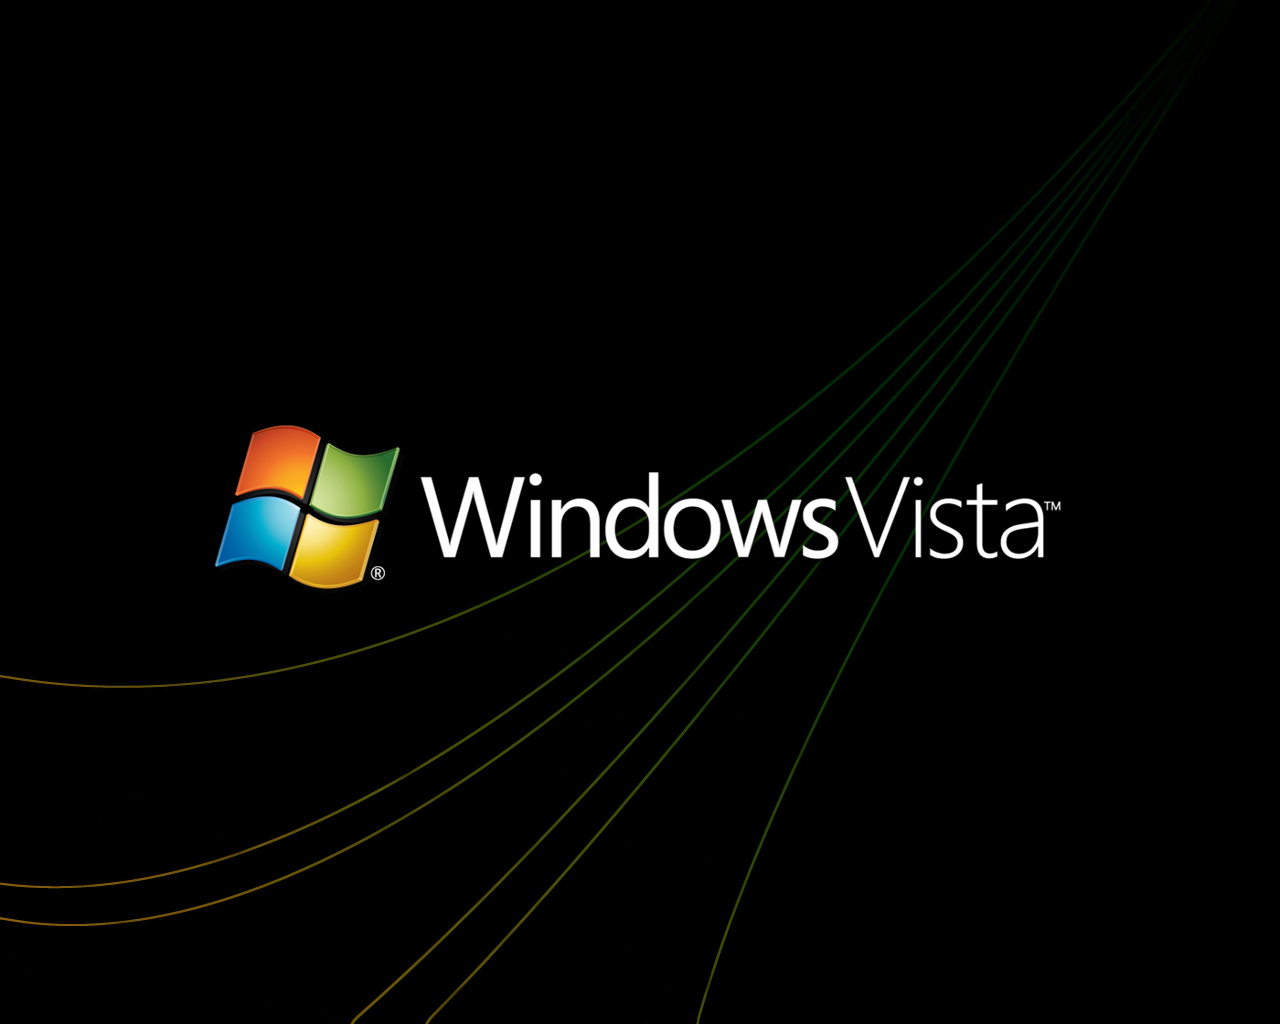 Windows Vista Wallpaper Set 18